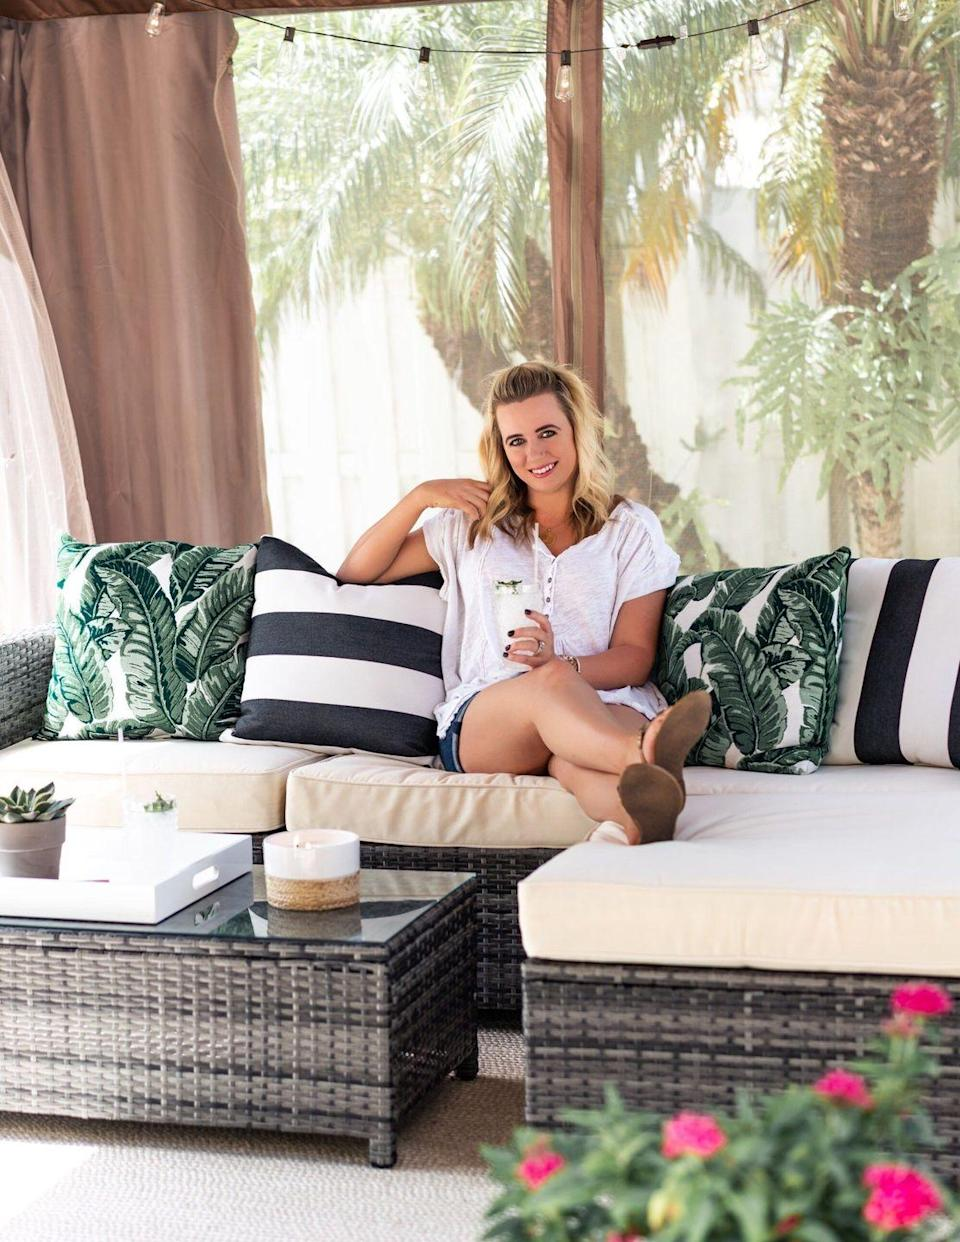 """<p>Create an outdoor oasis in your backyard with some string lights and palm leaf print pillows. A comfortable rattan sectional makes this gazebo the perfect place for lounging or hosting friends and family. </p><p><strong>Get the look at <a href=""""https://thefancythings.com/2018/09/our-backyard-reveal/"""" rel=""""nofollow noopener"""" target=""""_blank"""" data-ylk=""""slk:Fancy Things"""" class=""""link rapid-noclick-resp"""">Fancy Things</a>. </strong></p><p><a class=""""link rapid-noclick-resp"""" href=""""https://www.amazon.com/HGOD-DESIGNS-Decorative-Outdoor-Standard/dp/B07DJCJMTY/?tag=syn-yahoo-20&ascsubtag=%5Bartid%7C10050.g.30932979%5Bsrc%7Cyahoo-us"""" rel=""""nofollow noopener"""" target=""""_blank"""" data-ylk=""""slk:SHOP OUTDOOR PALM LEAF PILLOWS"""">SHOP OUTDOOR PALM LEAF PILLOWS</a></p>"""